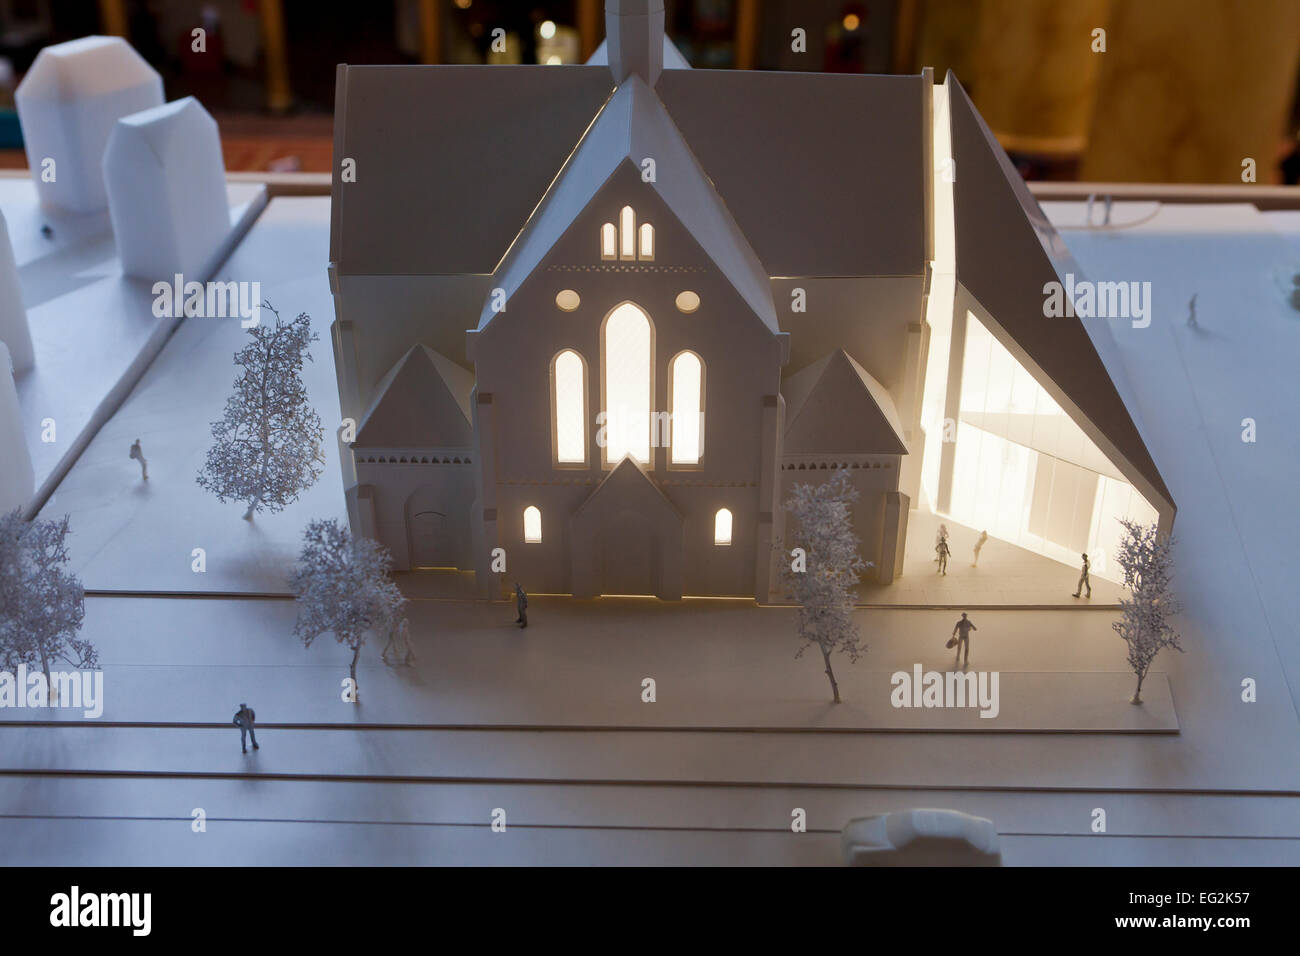 Architectural model for church building - USA - Stock Image